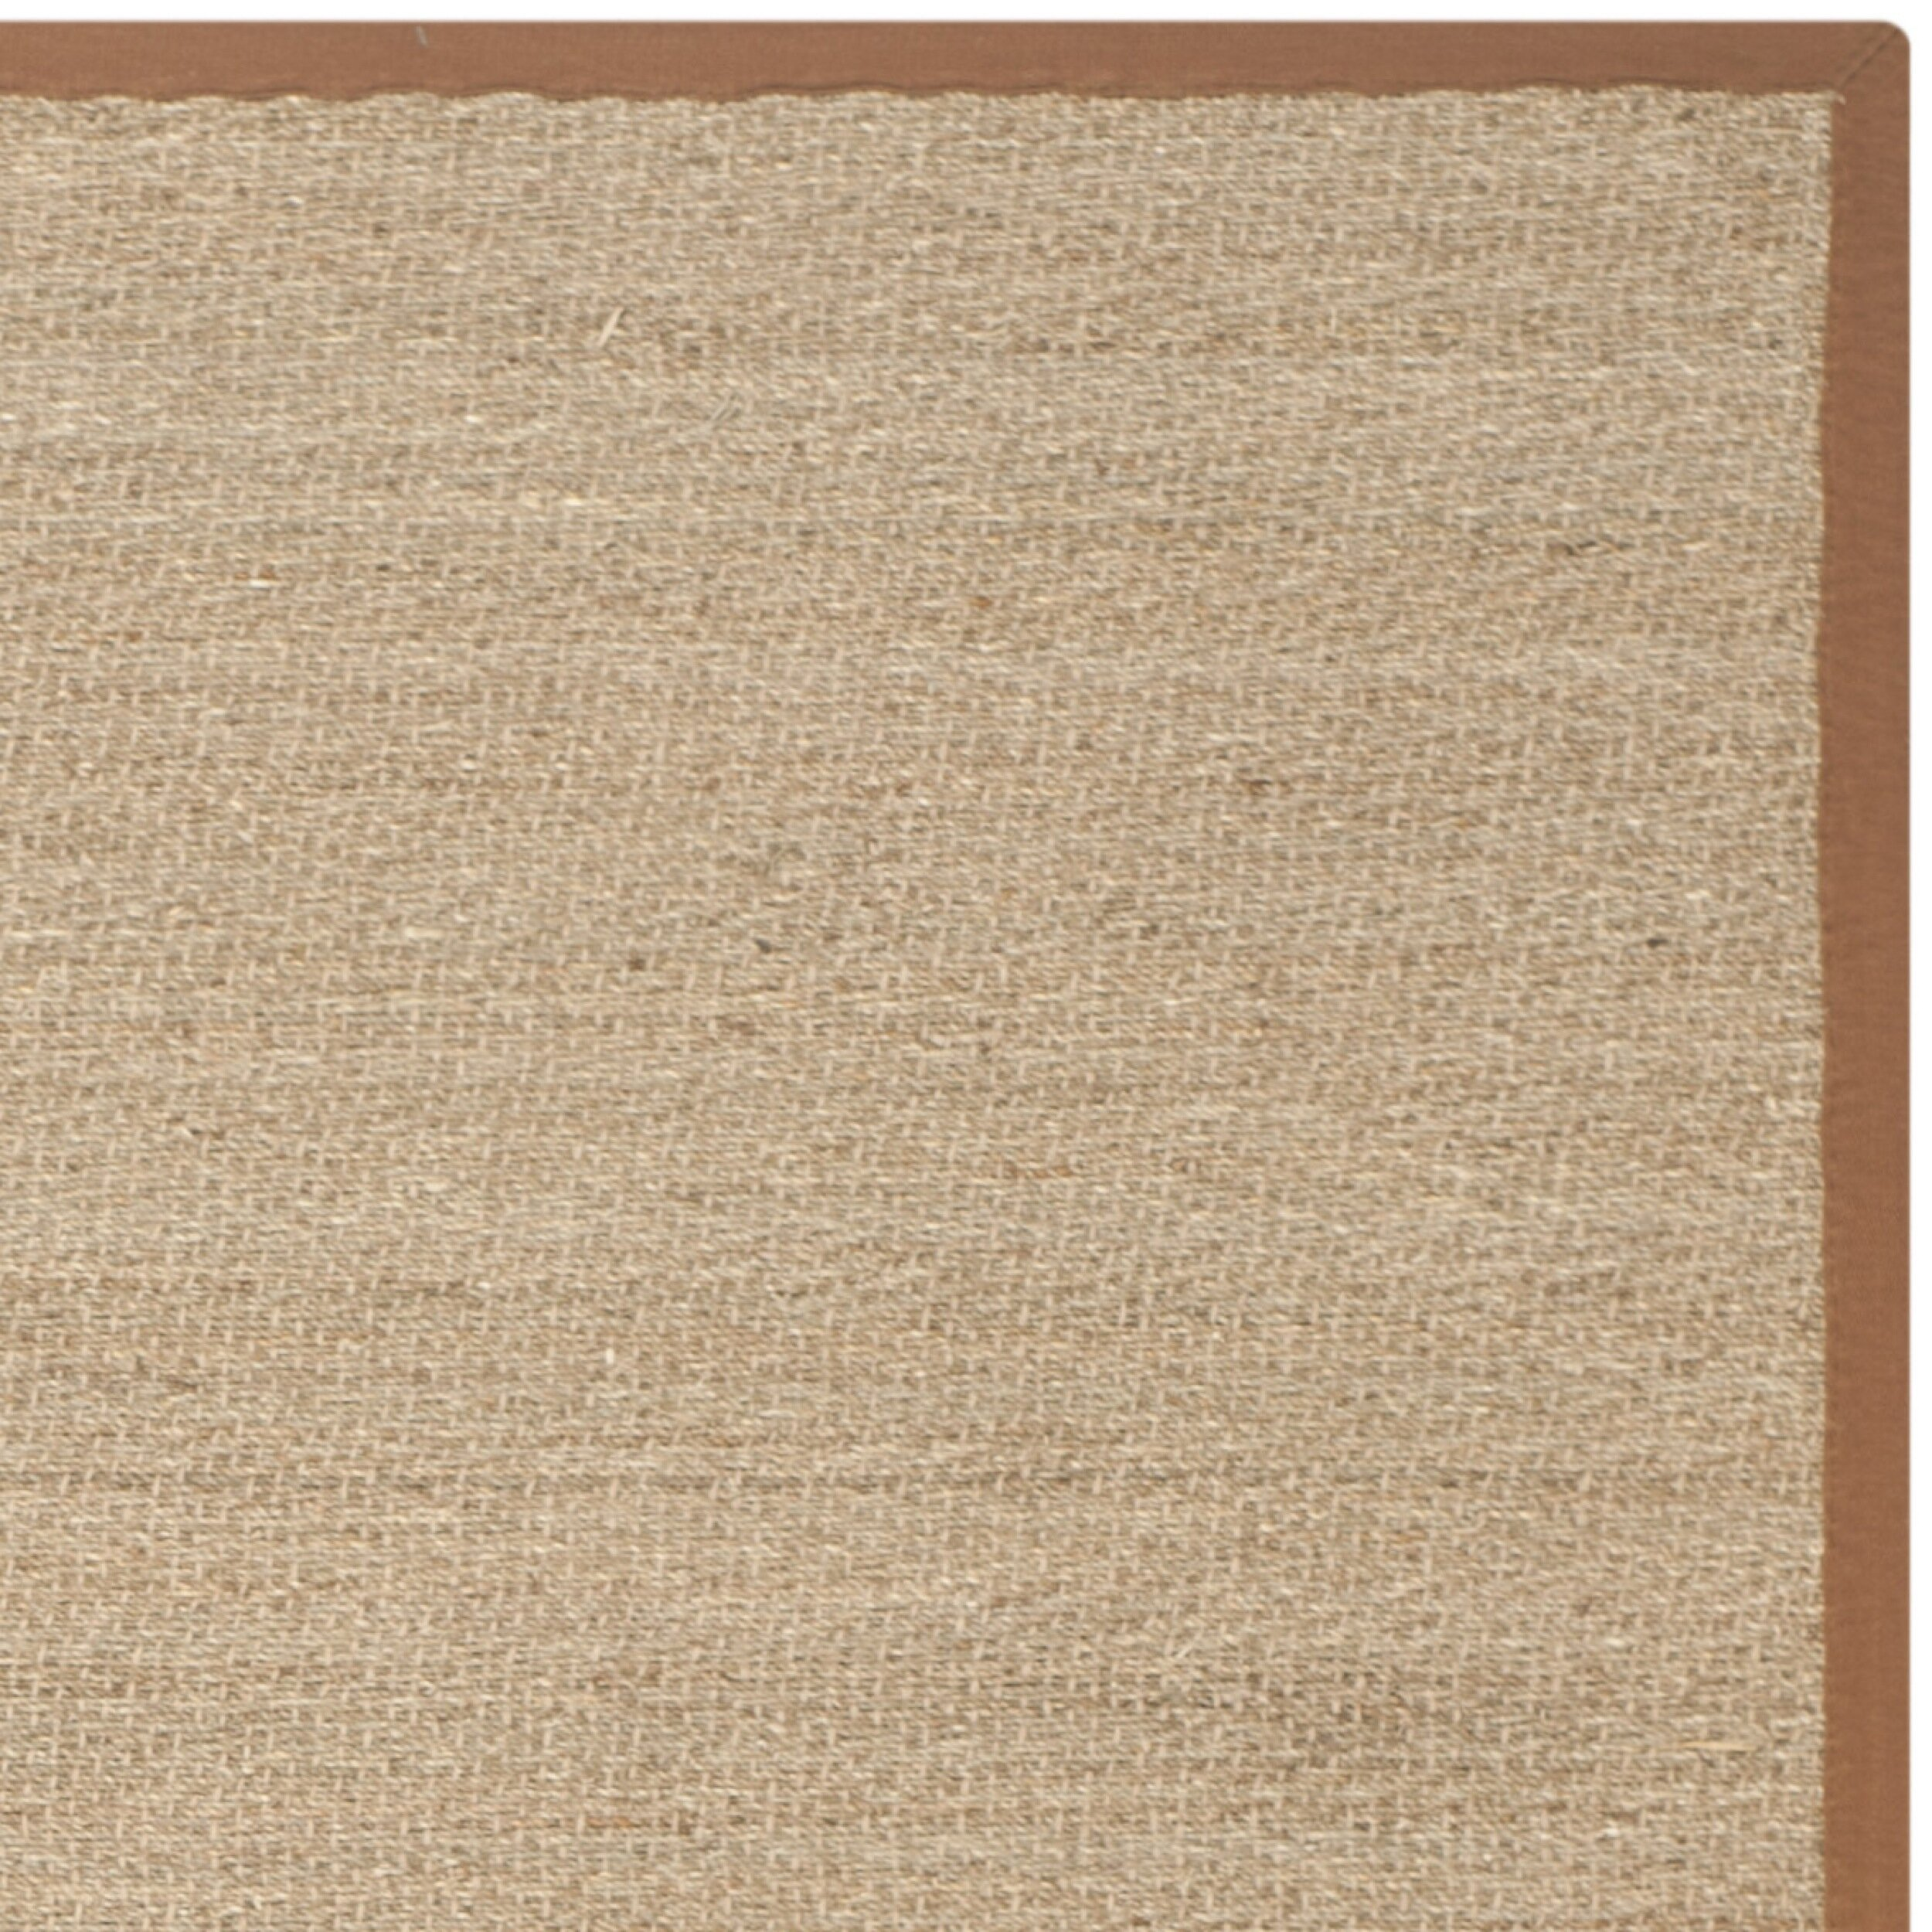 Charlton Home Alberta NaturalLight Brown Contemporary  : Natural Light Brown Area Rug CHLH3933 from www.wayfair.com size 2500 x 2500 jpeg 868kB